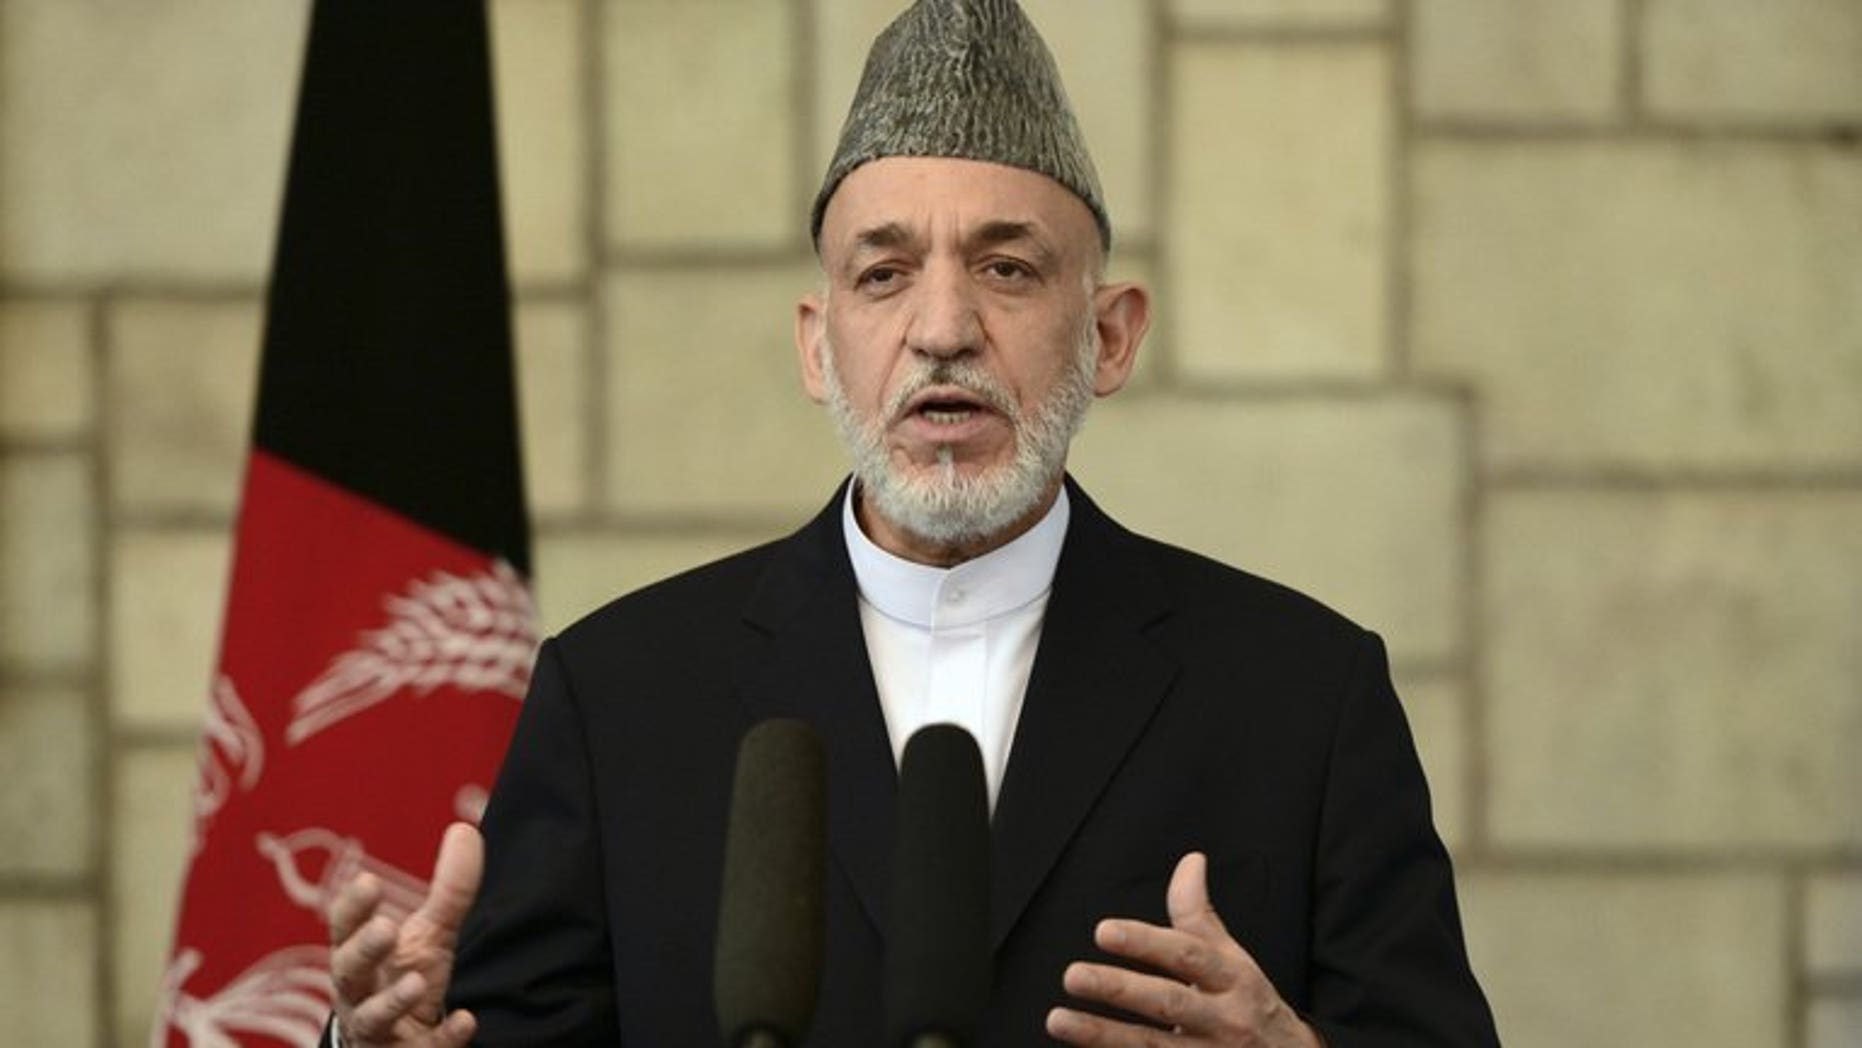 Afghan President Hamid Karzai speaks at a press conference in Kabul, on June 29, 2013. A senior Pakistani official has flown to Kabul, inviting Karzai to Islamabad as part of a charm offensive designed to improve strained relations and help peace efforts with the Taliban.